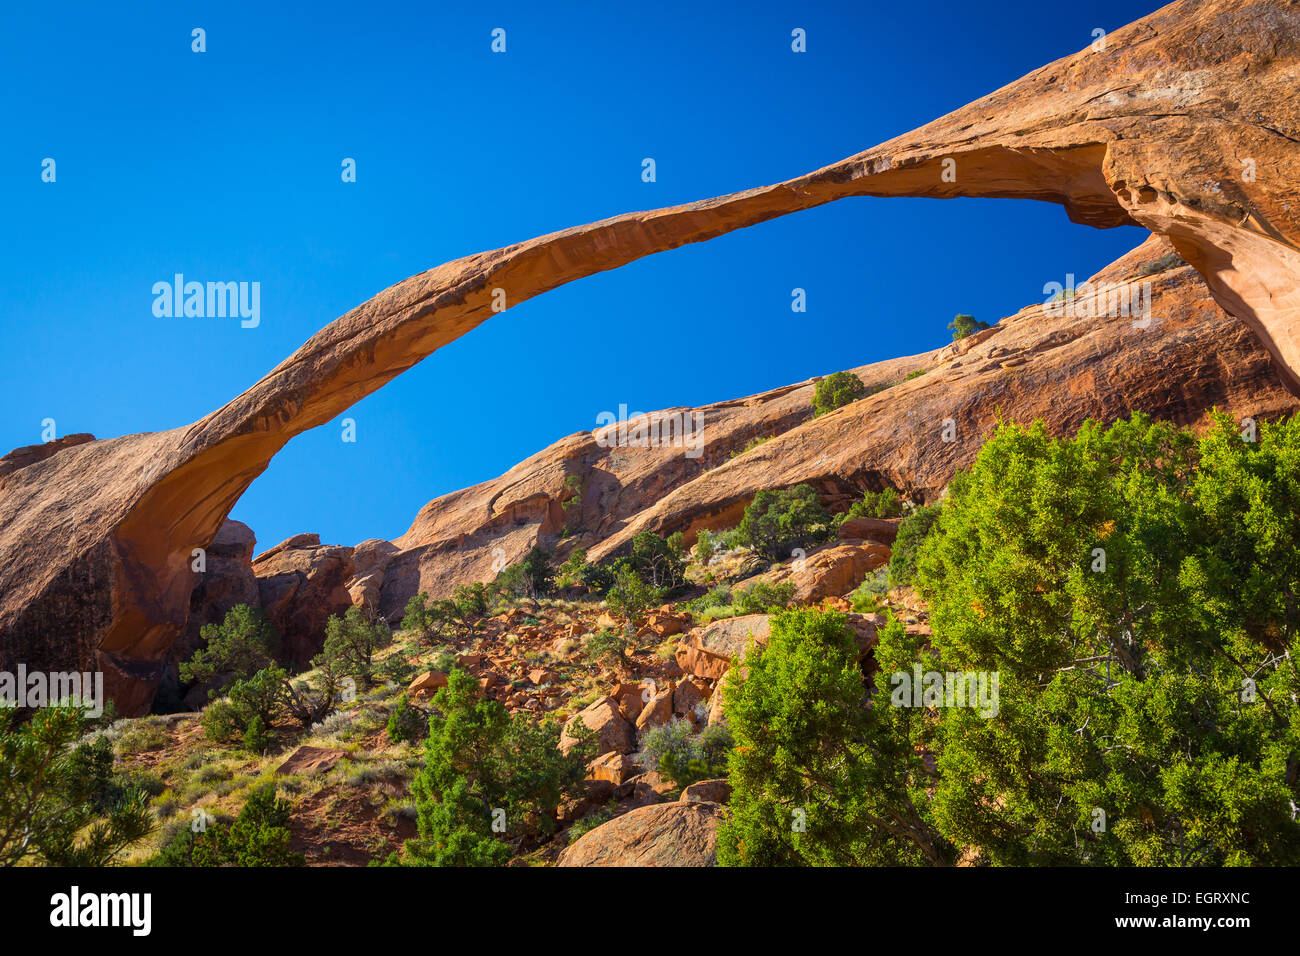 Landscape Arch in Arches National Park, a US National Park in eastern Utah. - Stock Image